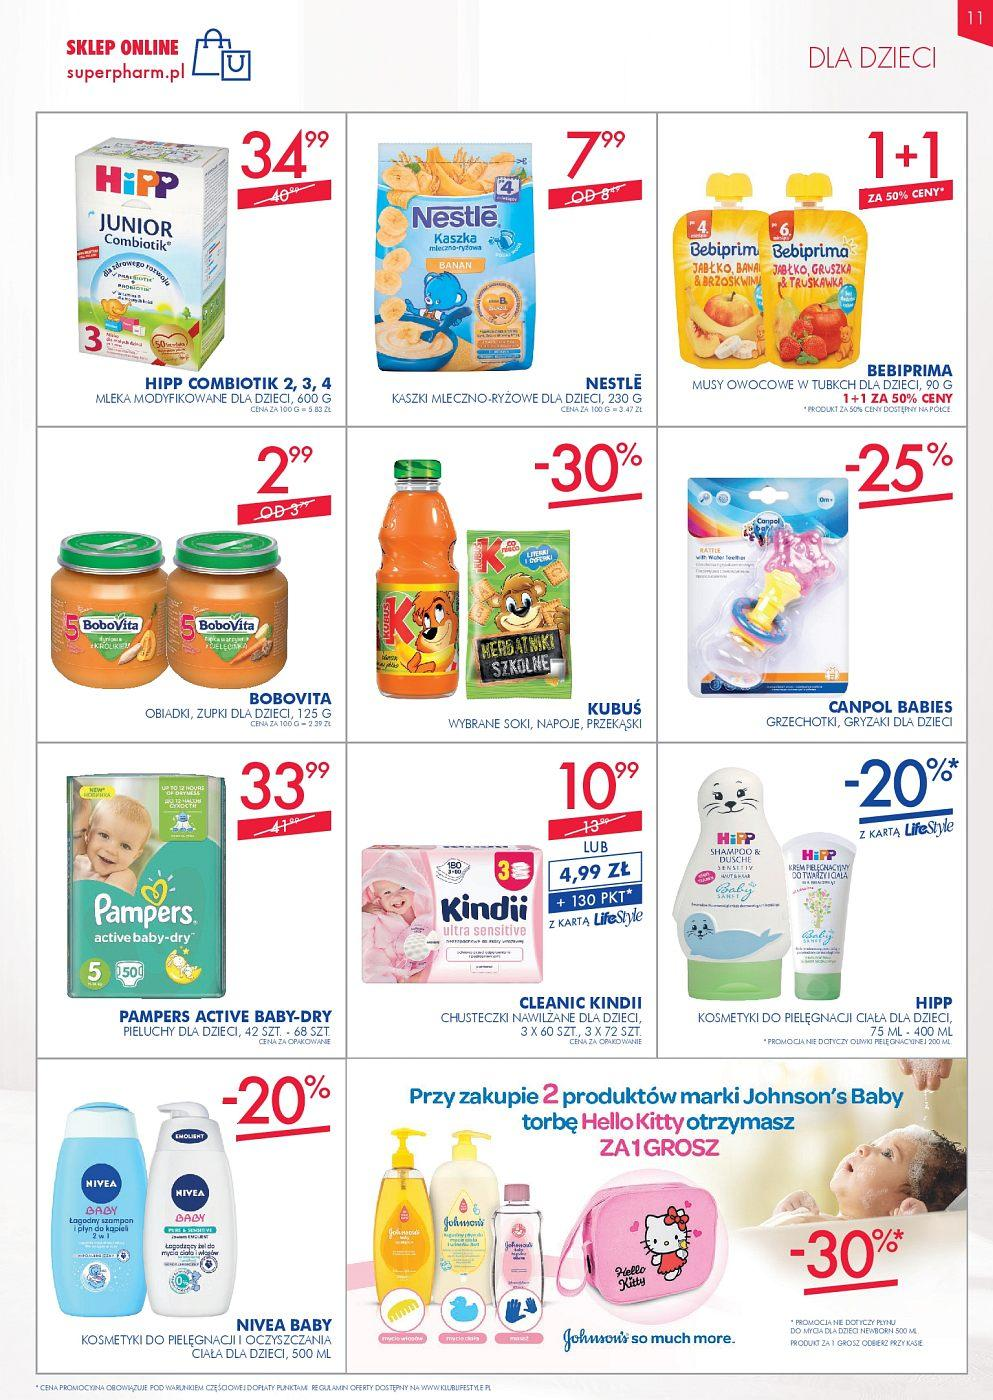 Gazetka promocyjna Superpharm do 12/09/2018 str.11